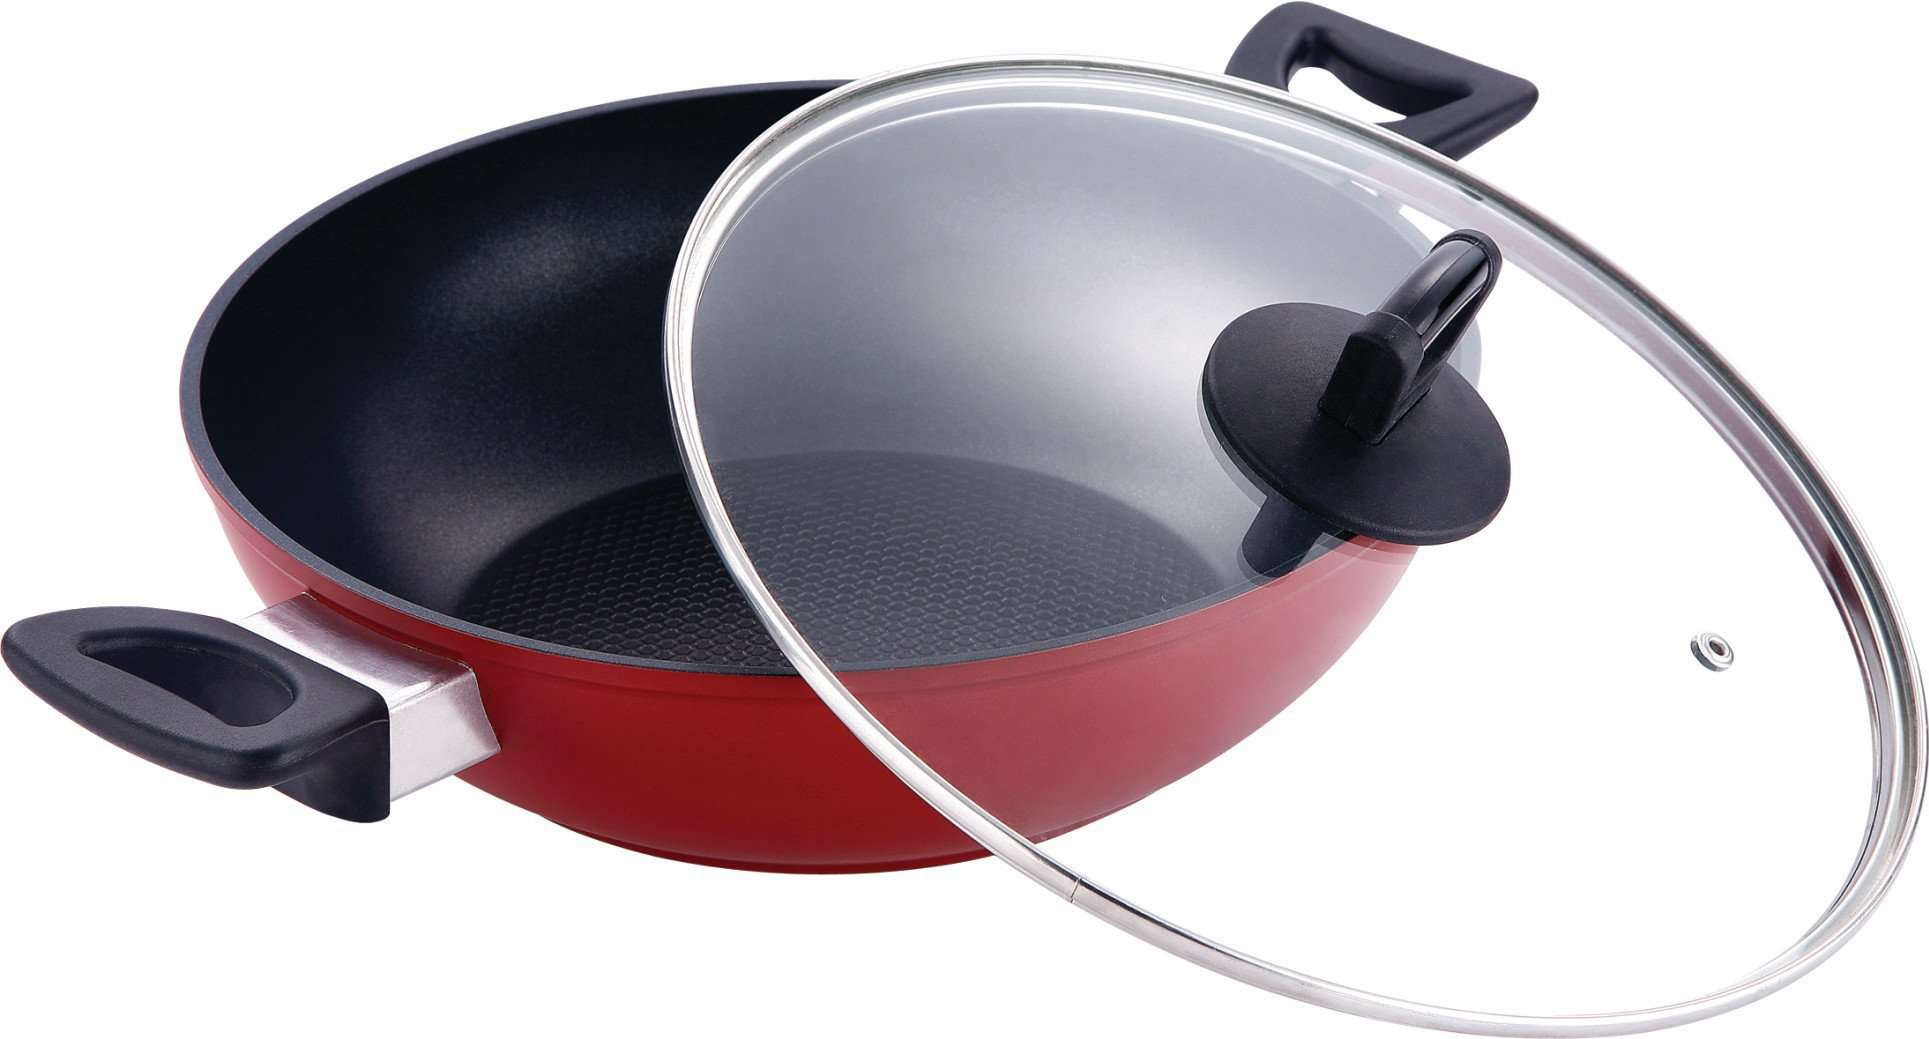 Bergner Scarlett Aluminium Wok with Glass Lid, 24 cm Induction Base